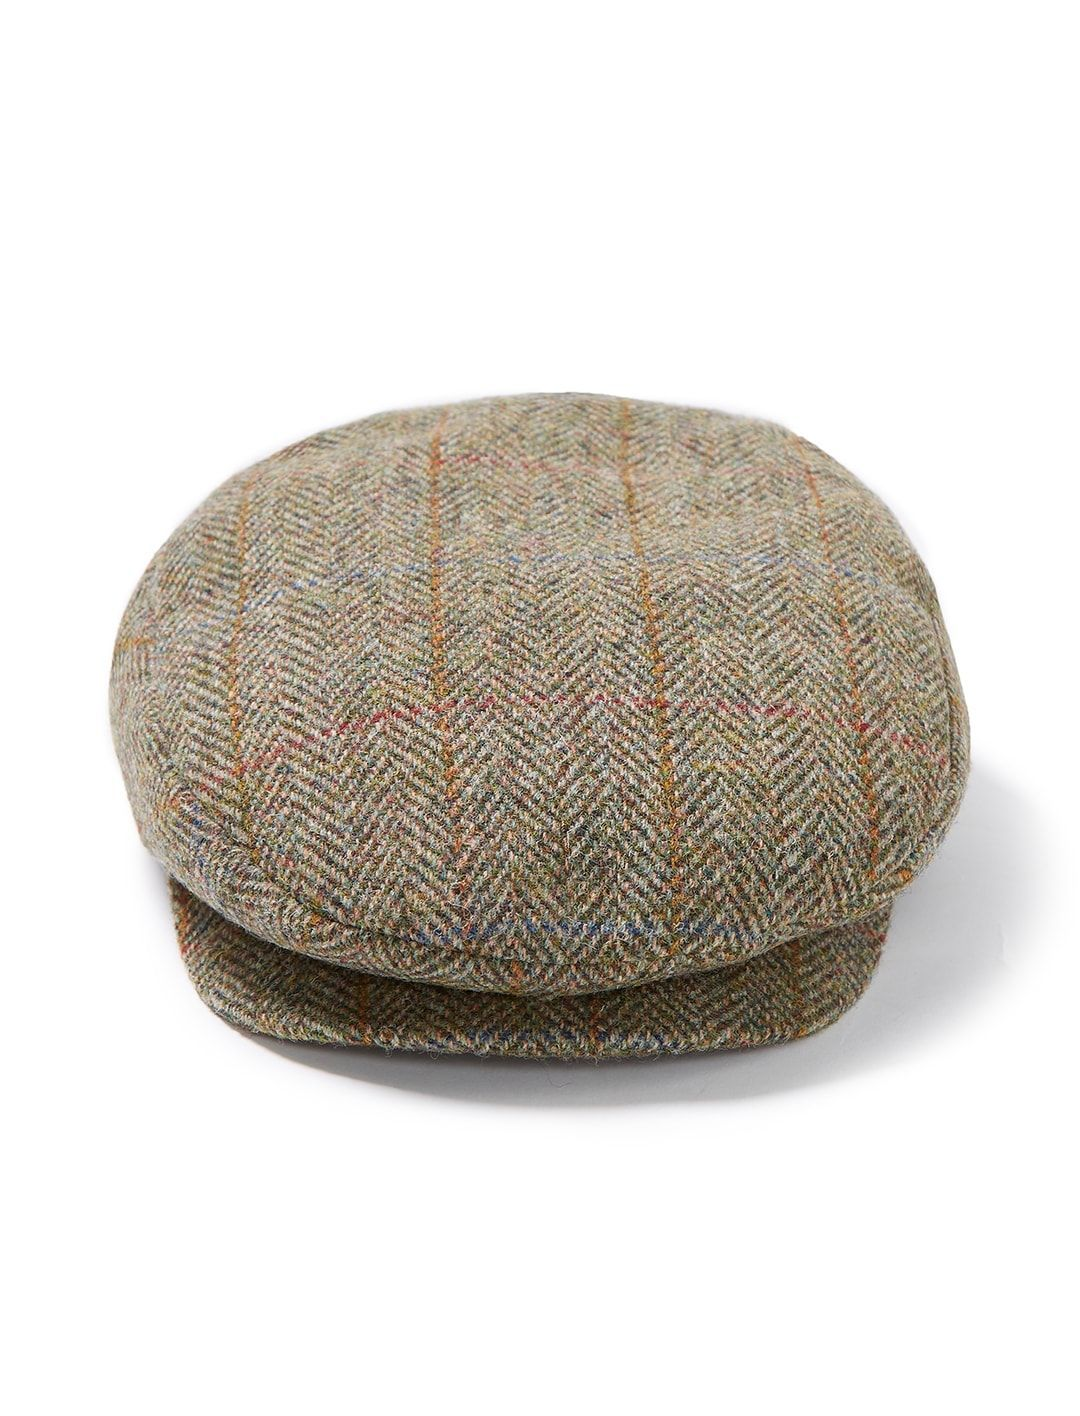 8db0ac15d1ce2 Stetson Men s HARRIS TWEED STW241. Details